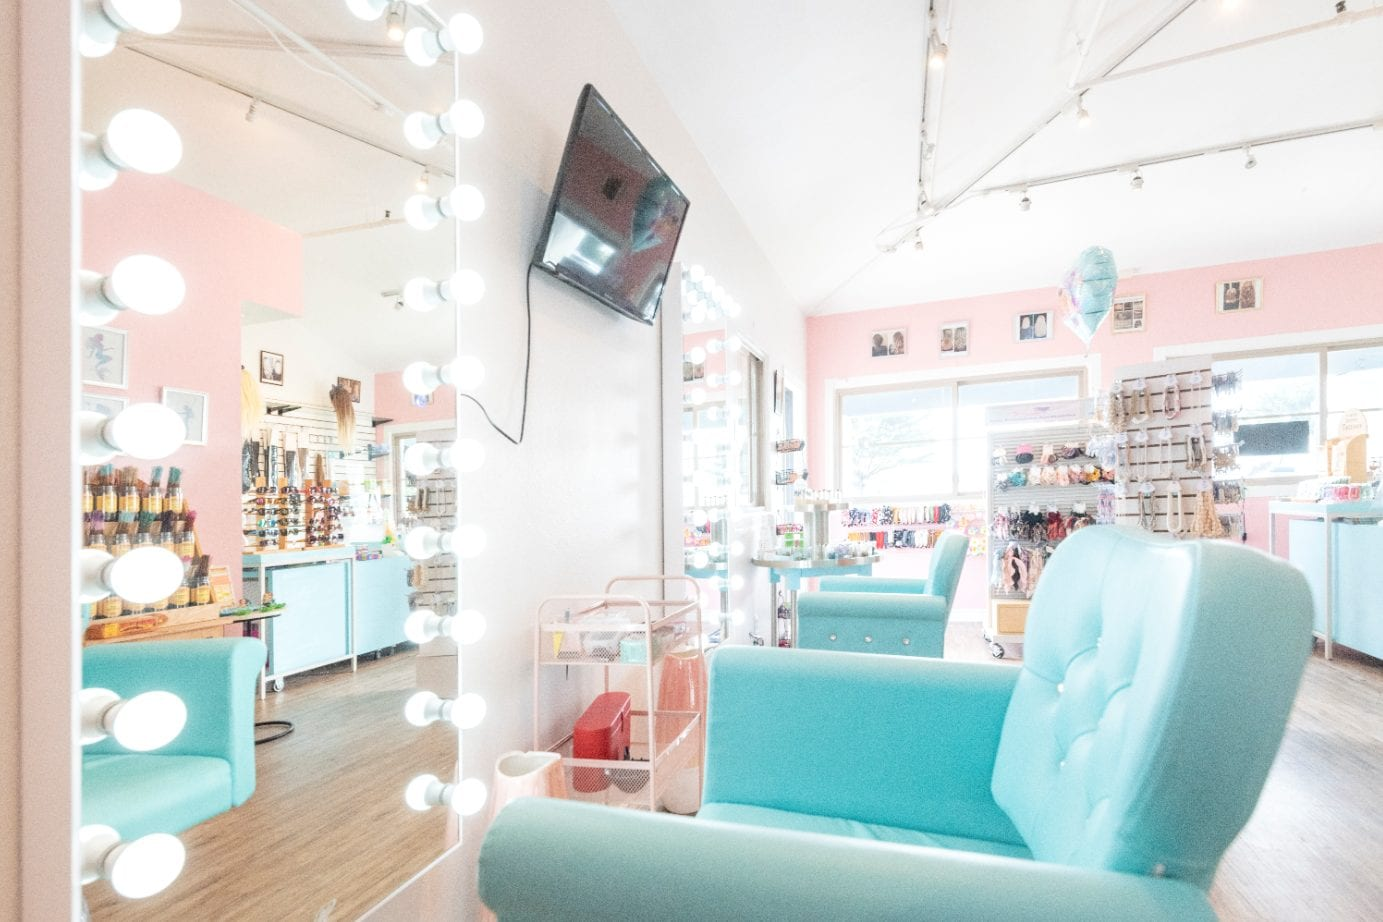 side view of the baby blue chairs and large mirrors